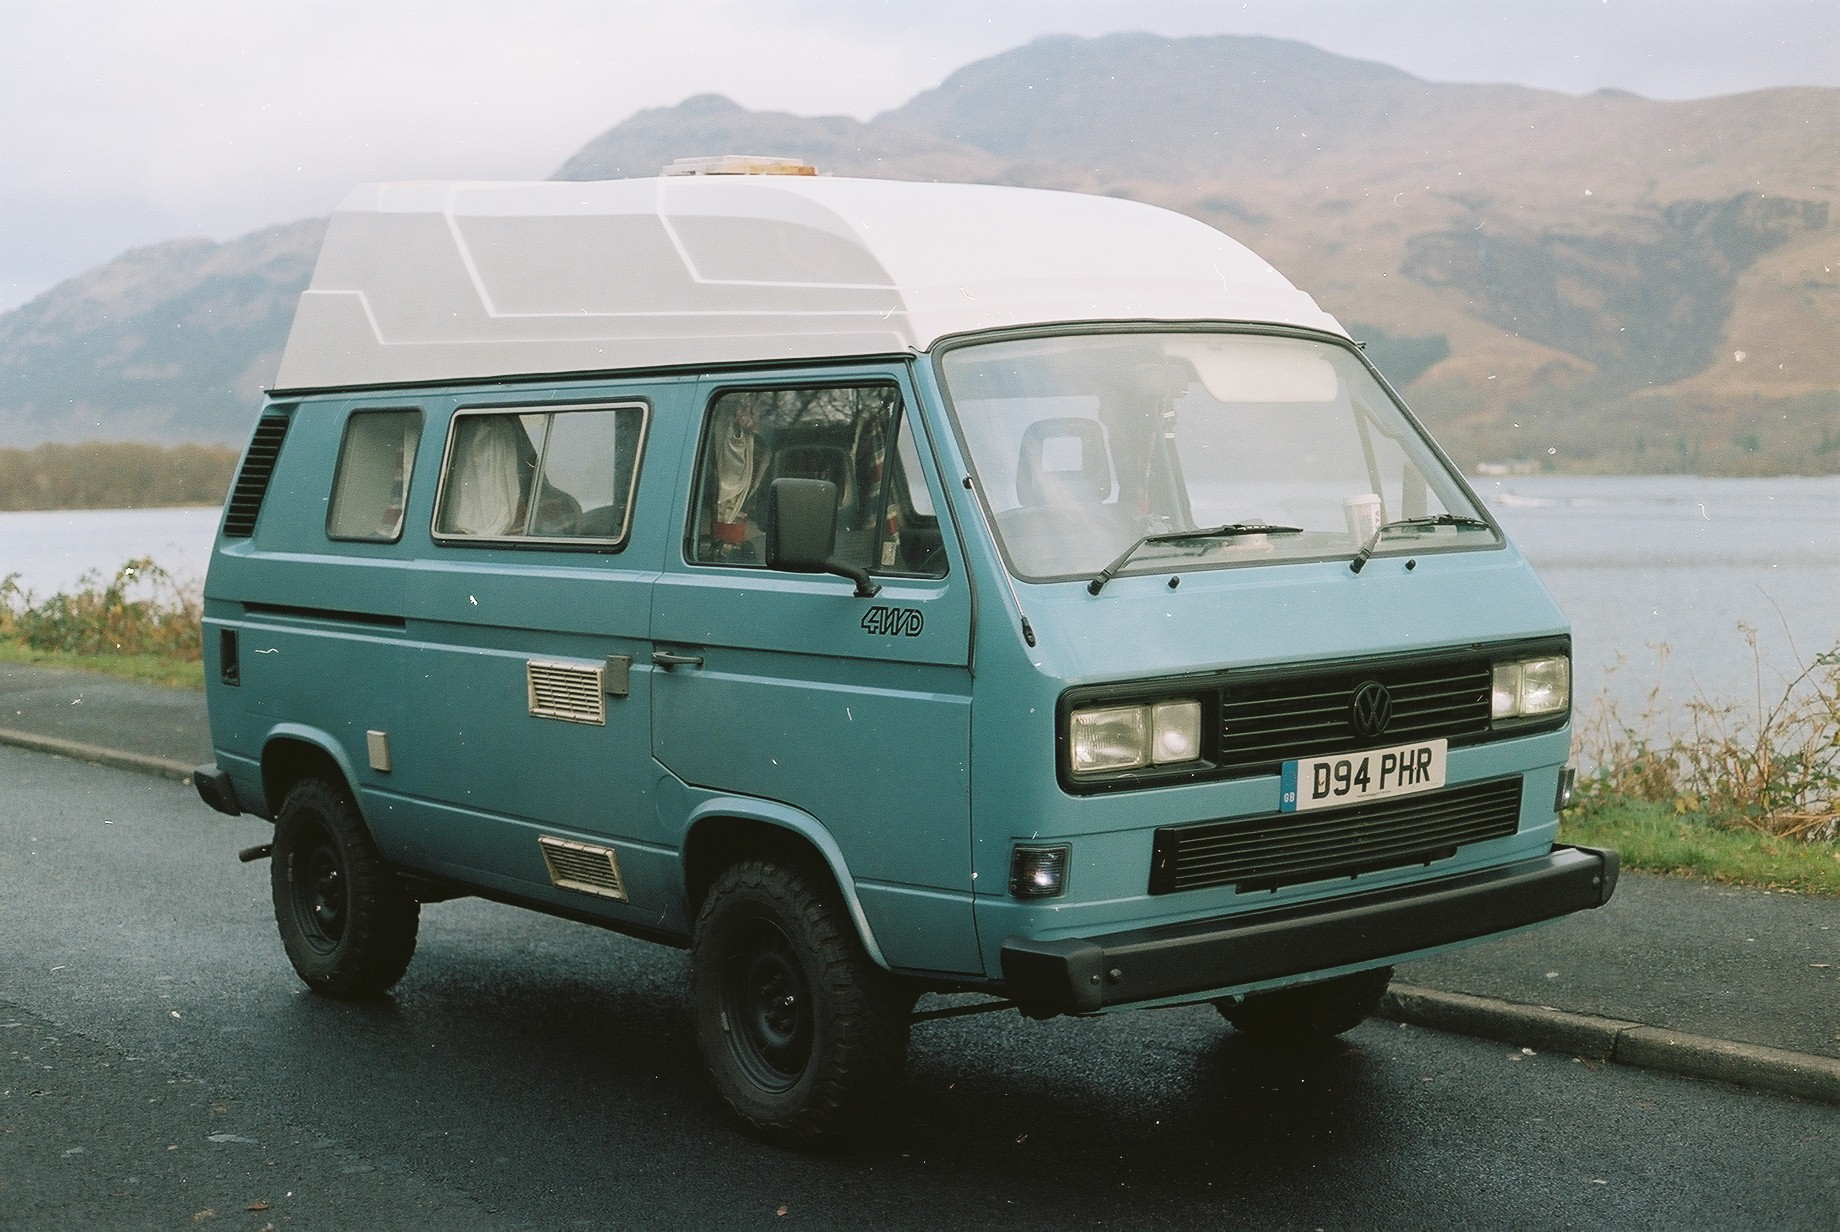 vw, vw t3, vw t3 syncro, syncro, vw syncro, vanagon, 4wd, t25, t3, van life, van life blog, jack macgowan, bicycle touring apocalypse, travel blog, volkswagen campervan, bfg all terrain, scotland, isle of skye, bikepacking, bicycle touring, cycle touring, film is not dead, canon, canon ae1, 35mm, film camera, film photography